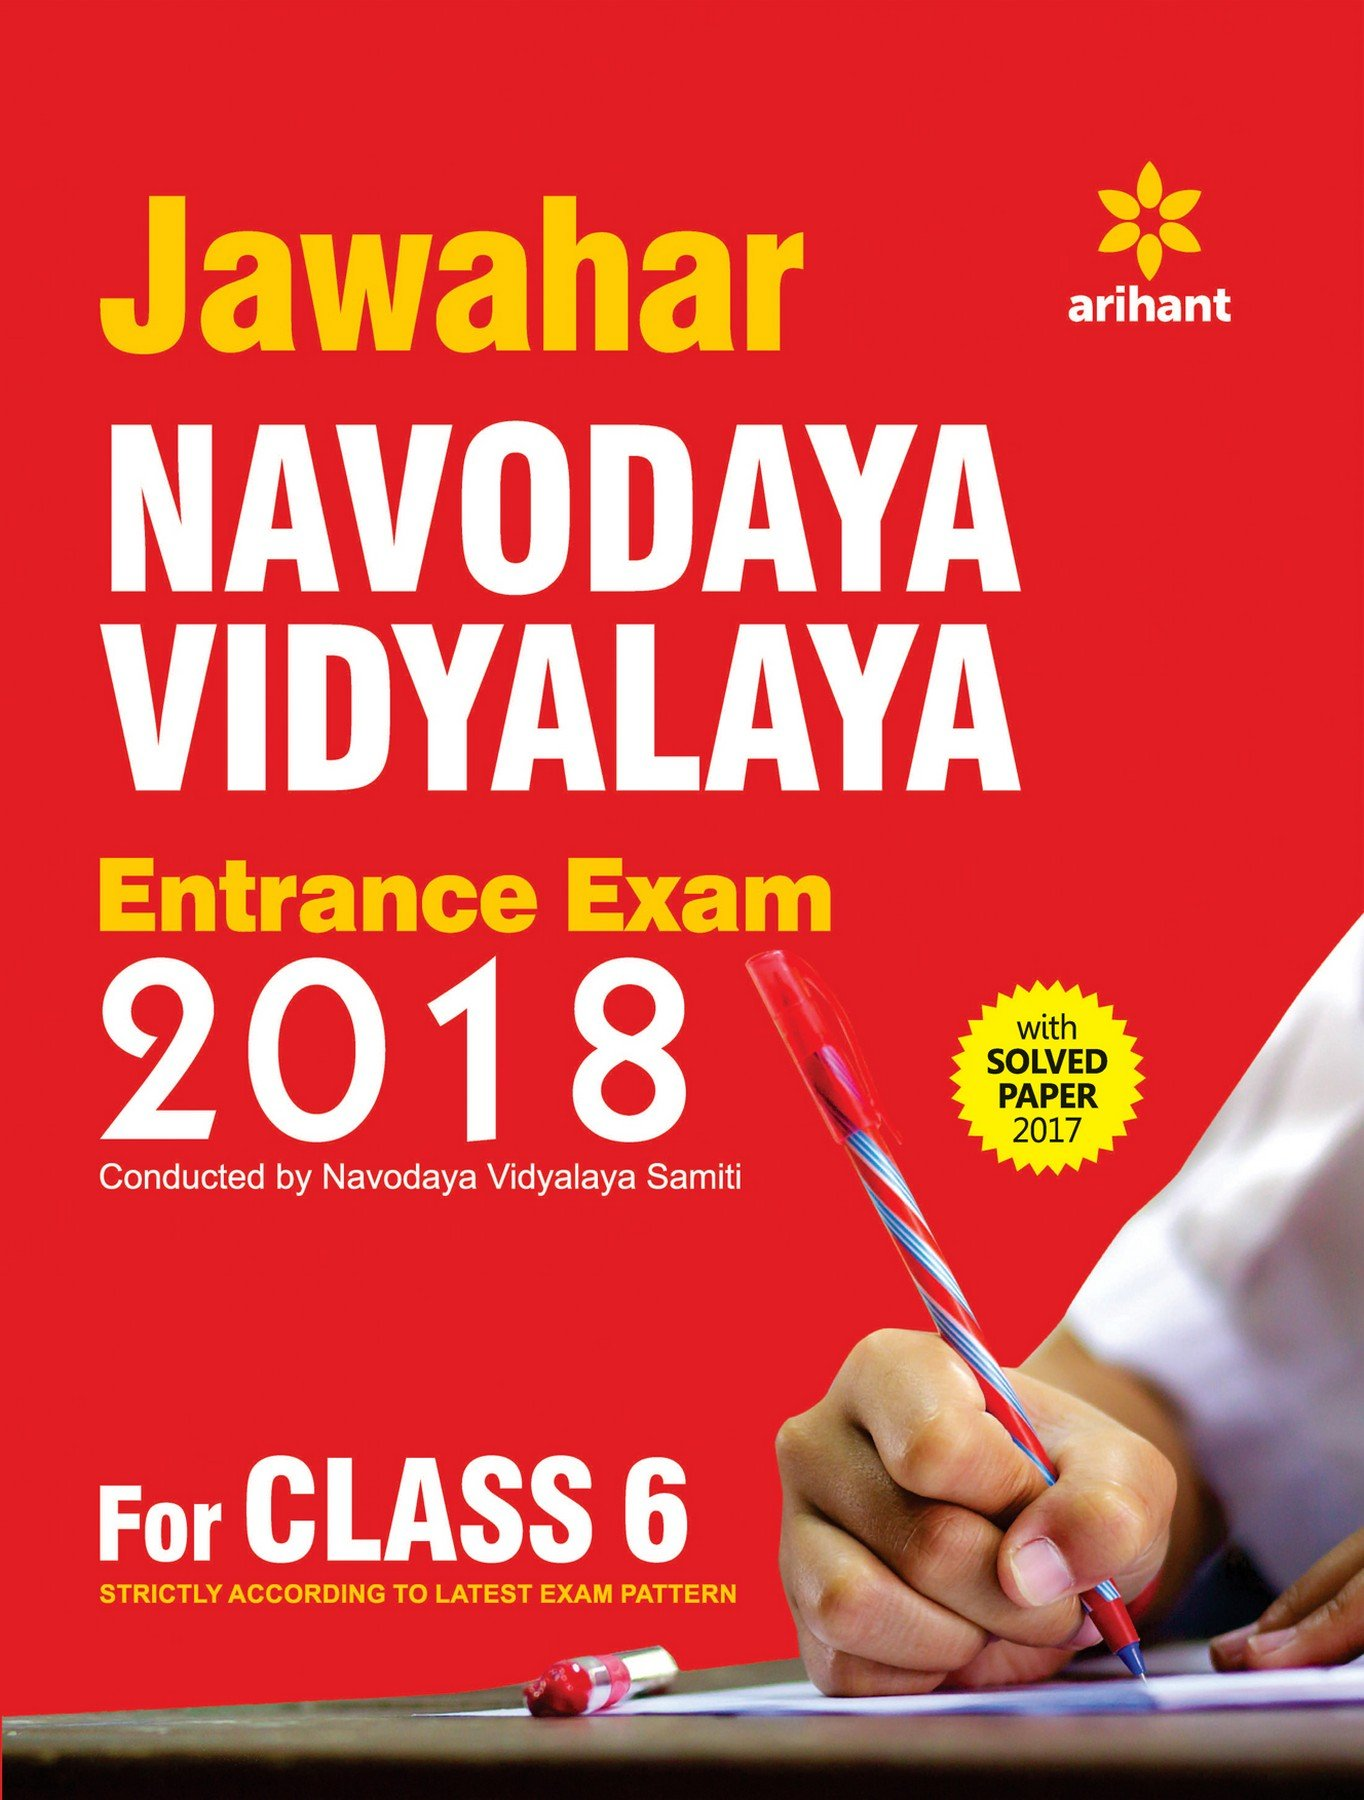 Buy Jawahar Navodaya Vidyalaya Entrance Exam 2018 for Class 6 Book